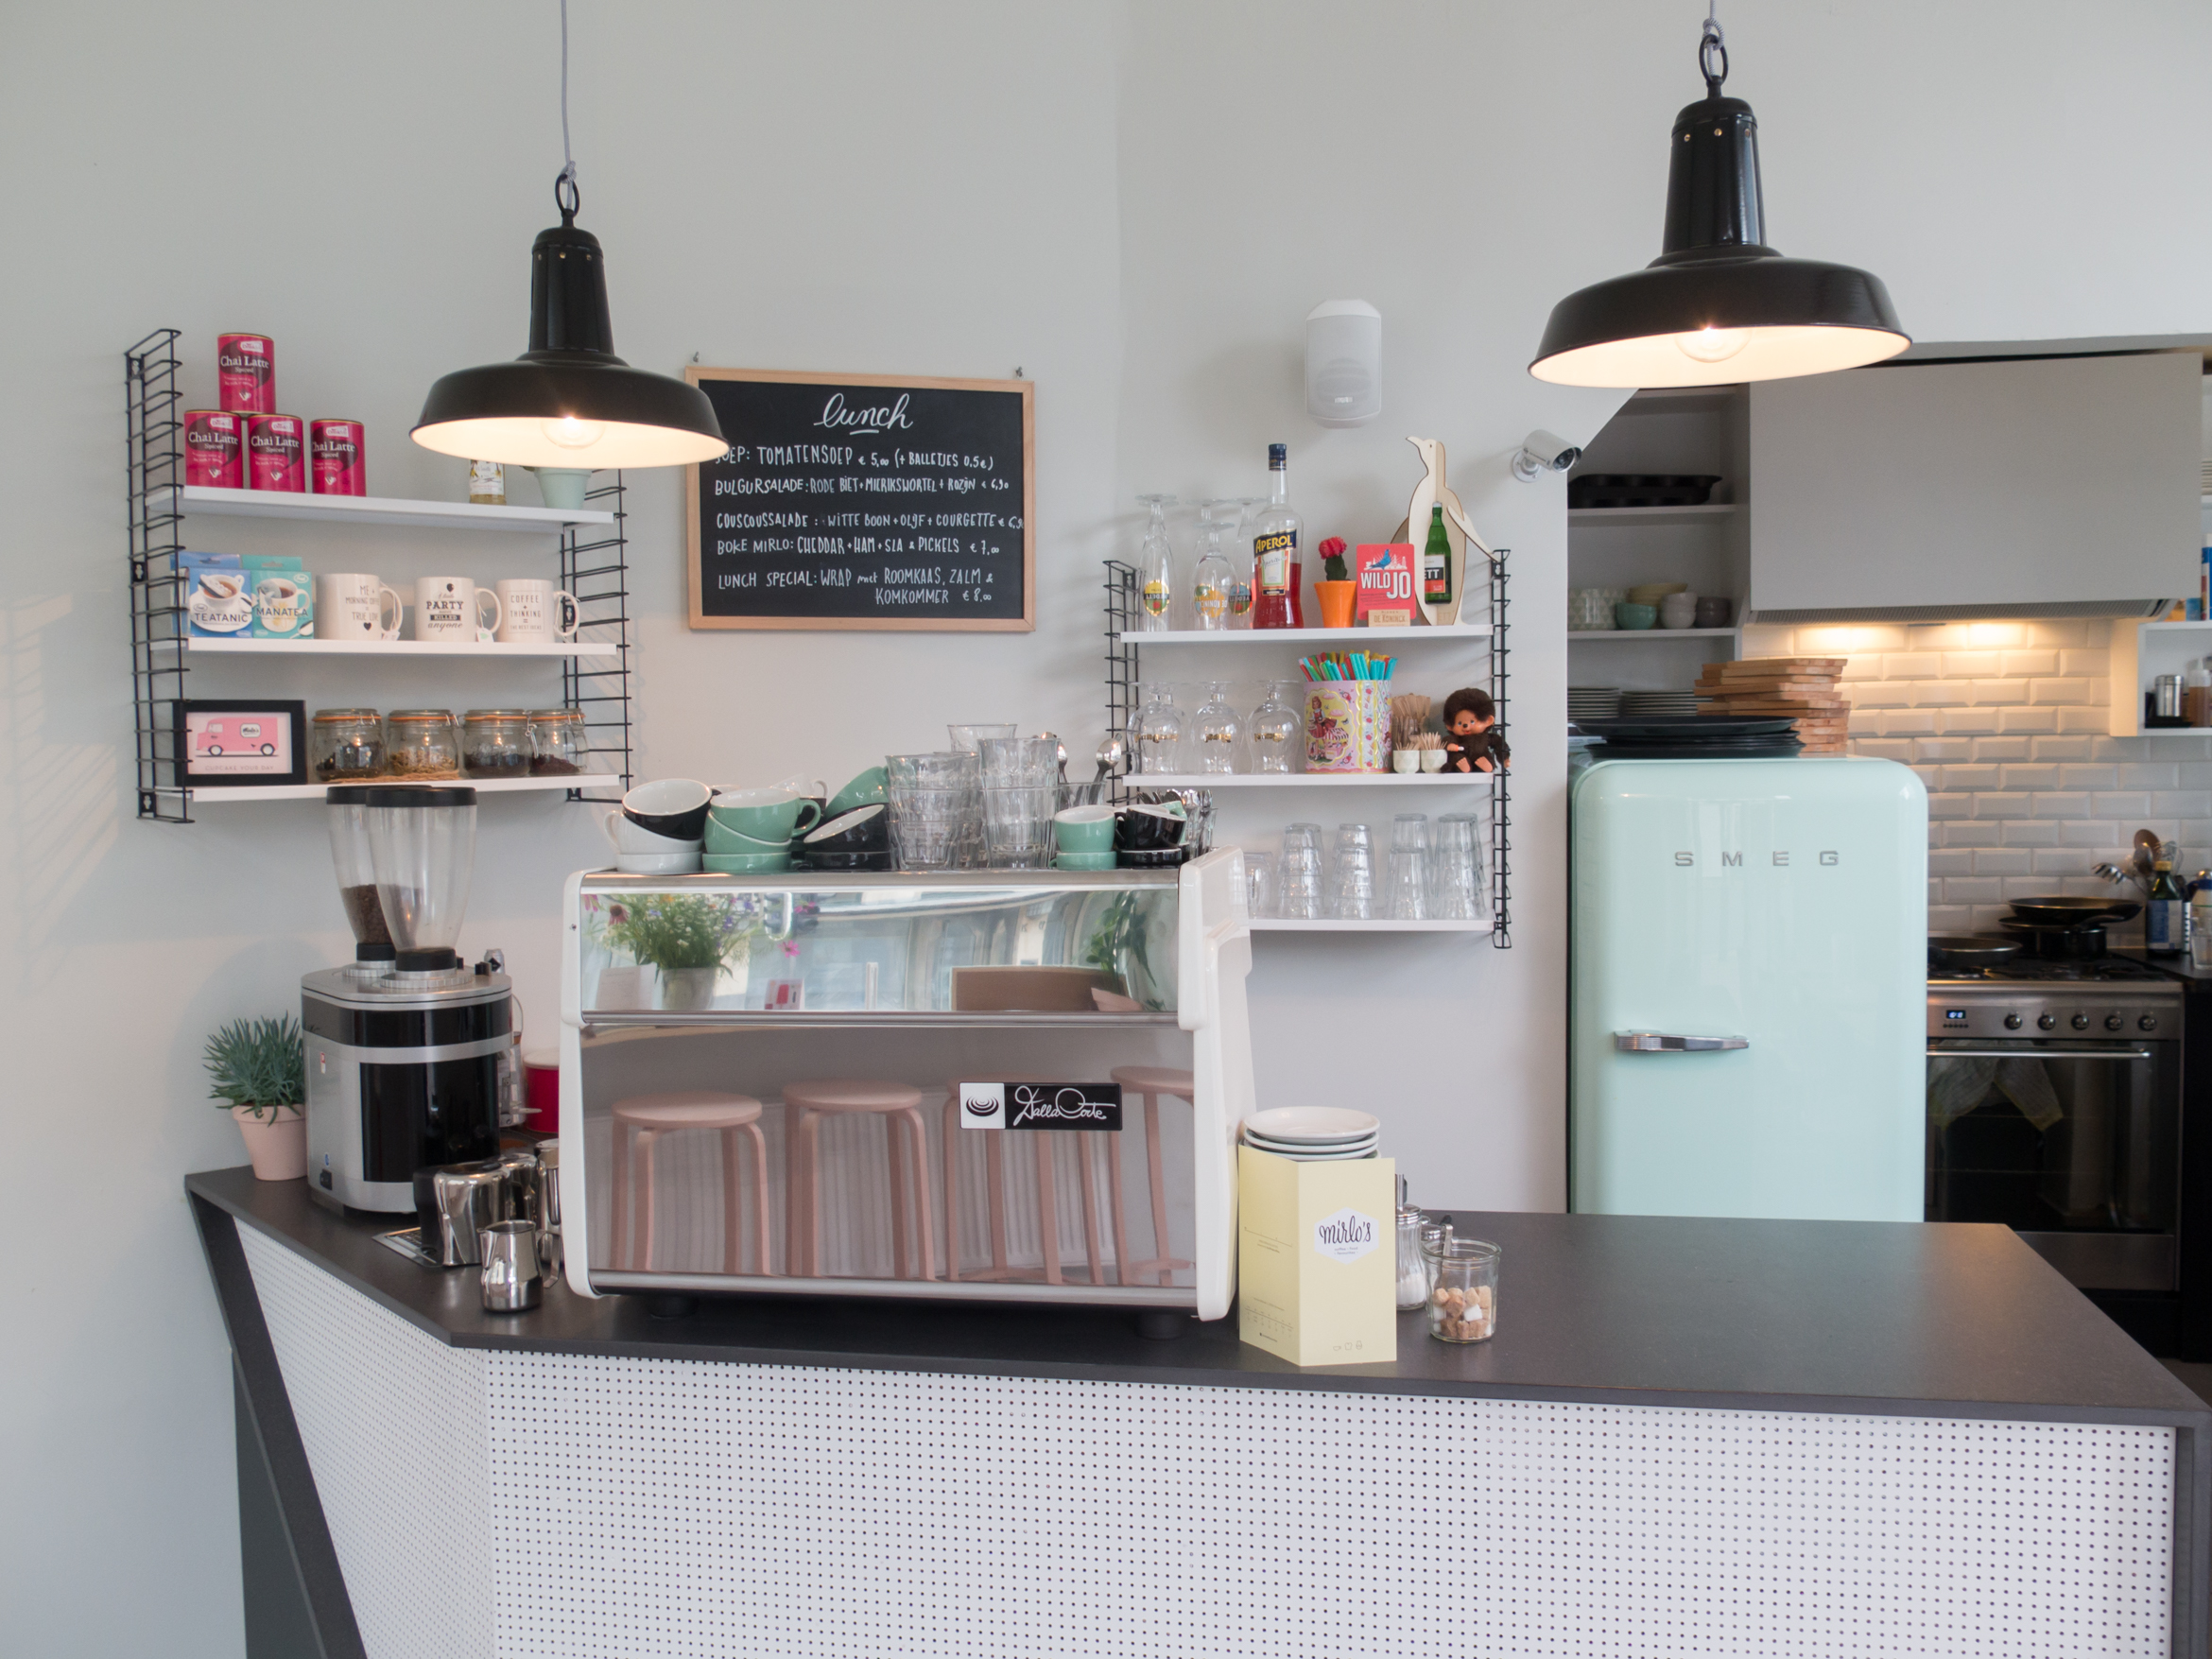 Mirlo's coffee bar in Antwerp